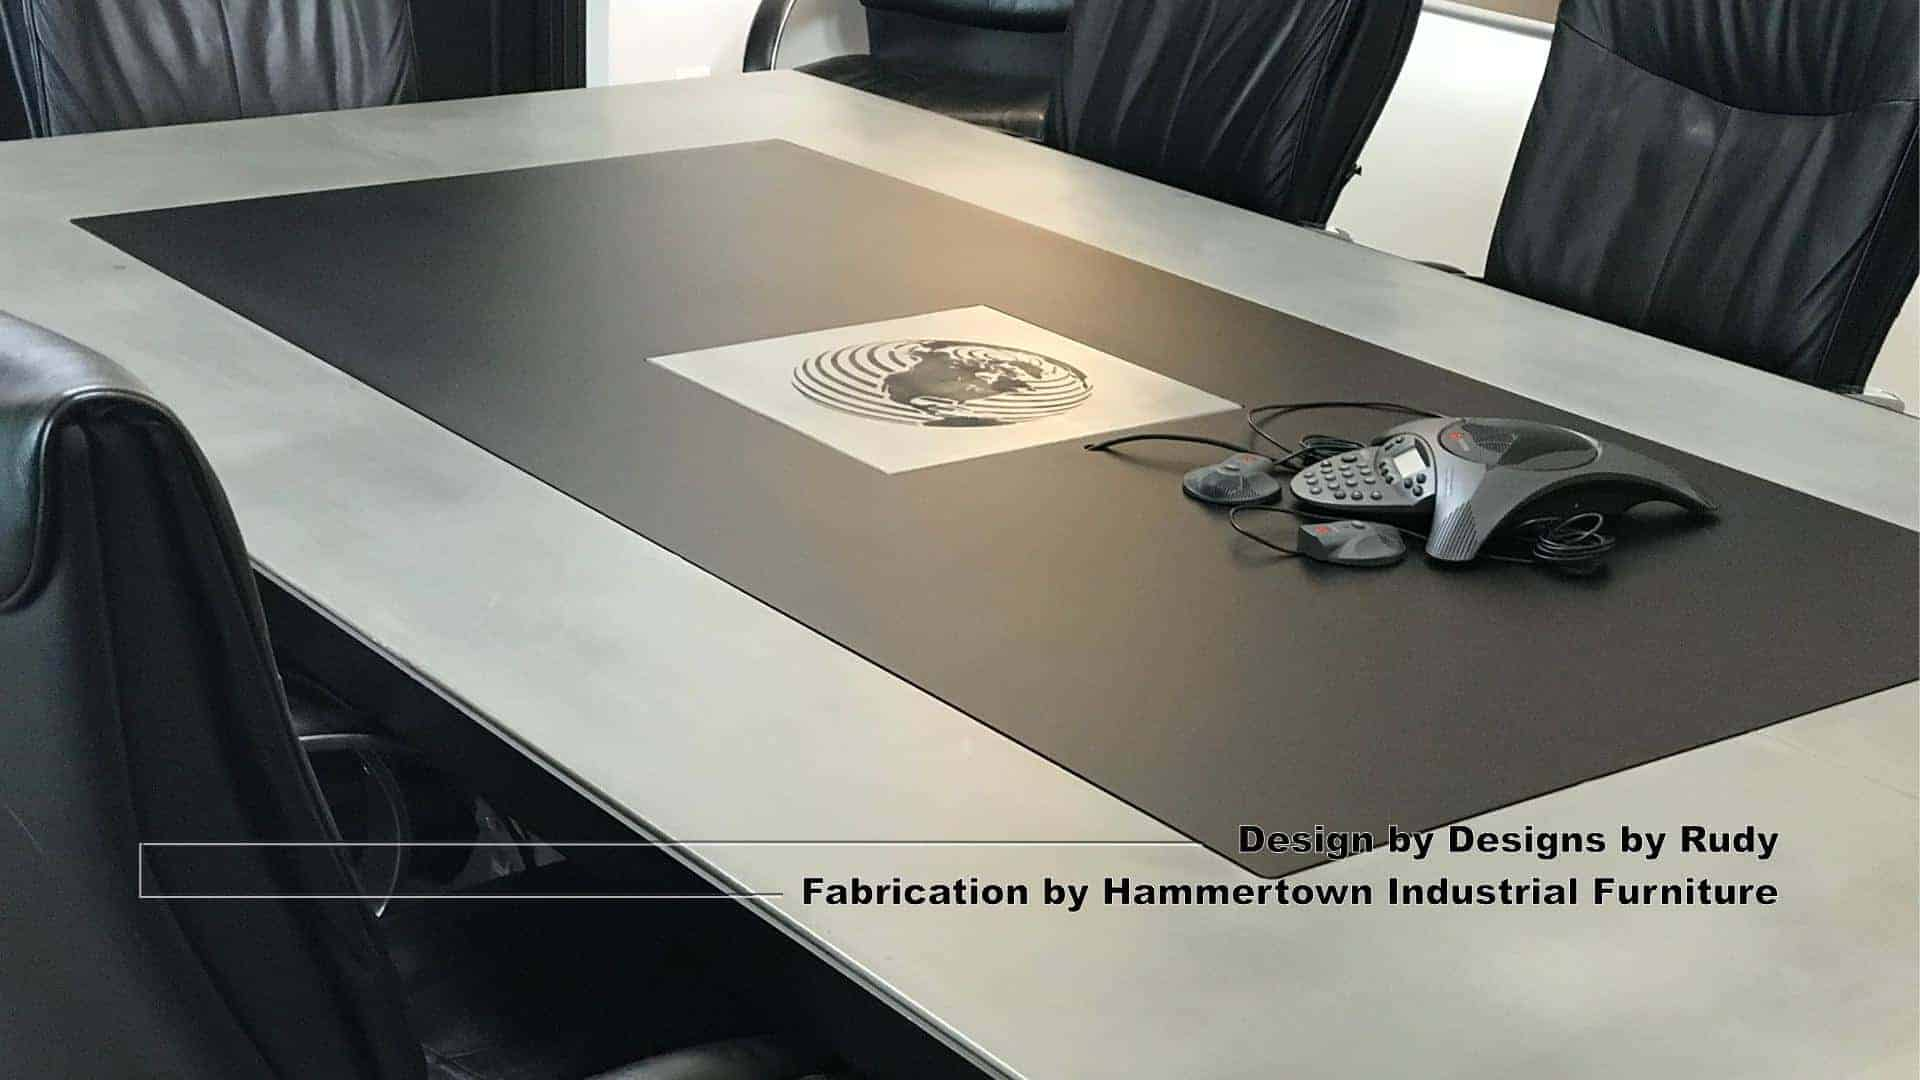 6 Concrete and steel boardroom table for NAC, Designs by Rudy, Hammertown Industrial Furniture, angle view